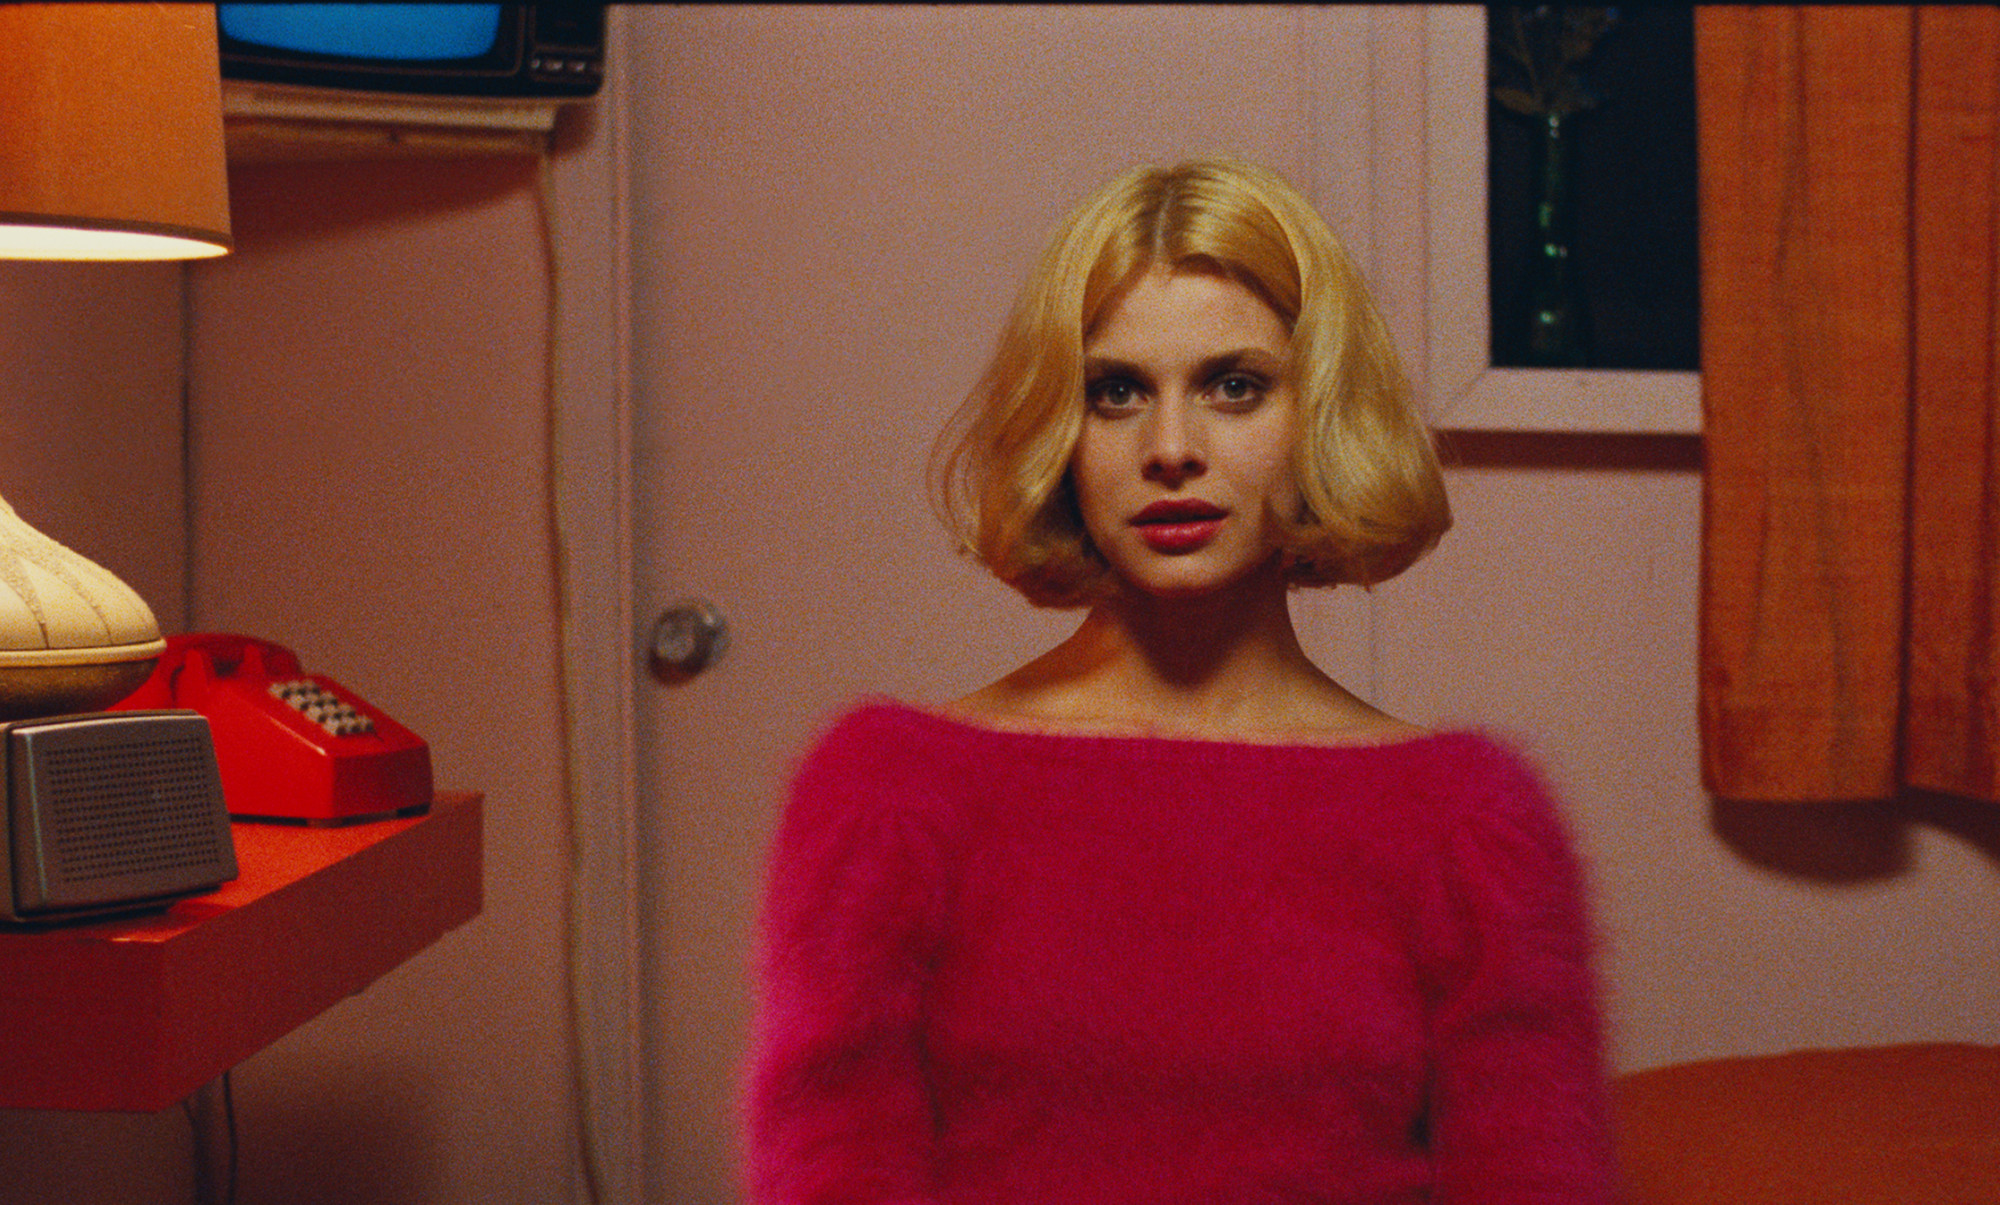 Paris, Texas. 1984. USA. Directed by Wim Wenders. Courtesy of Wim Wenders Stiftung 2014